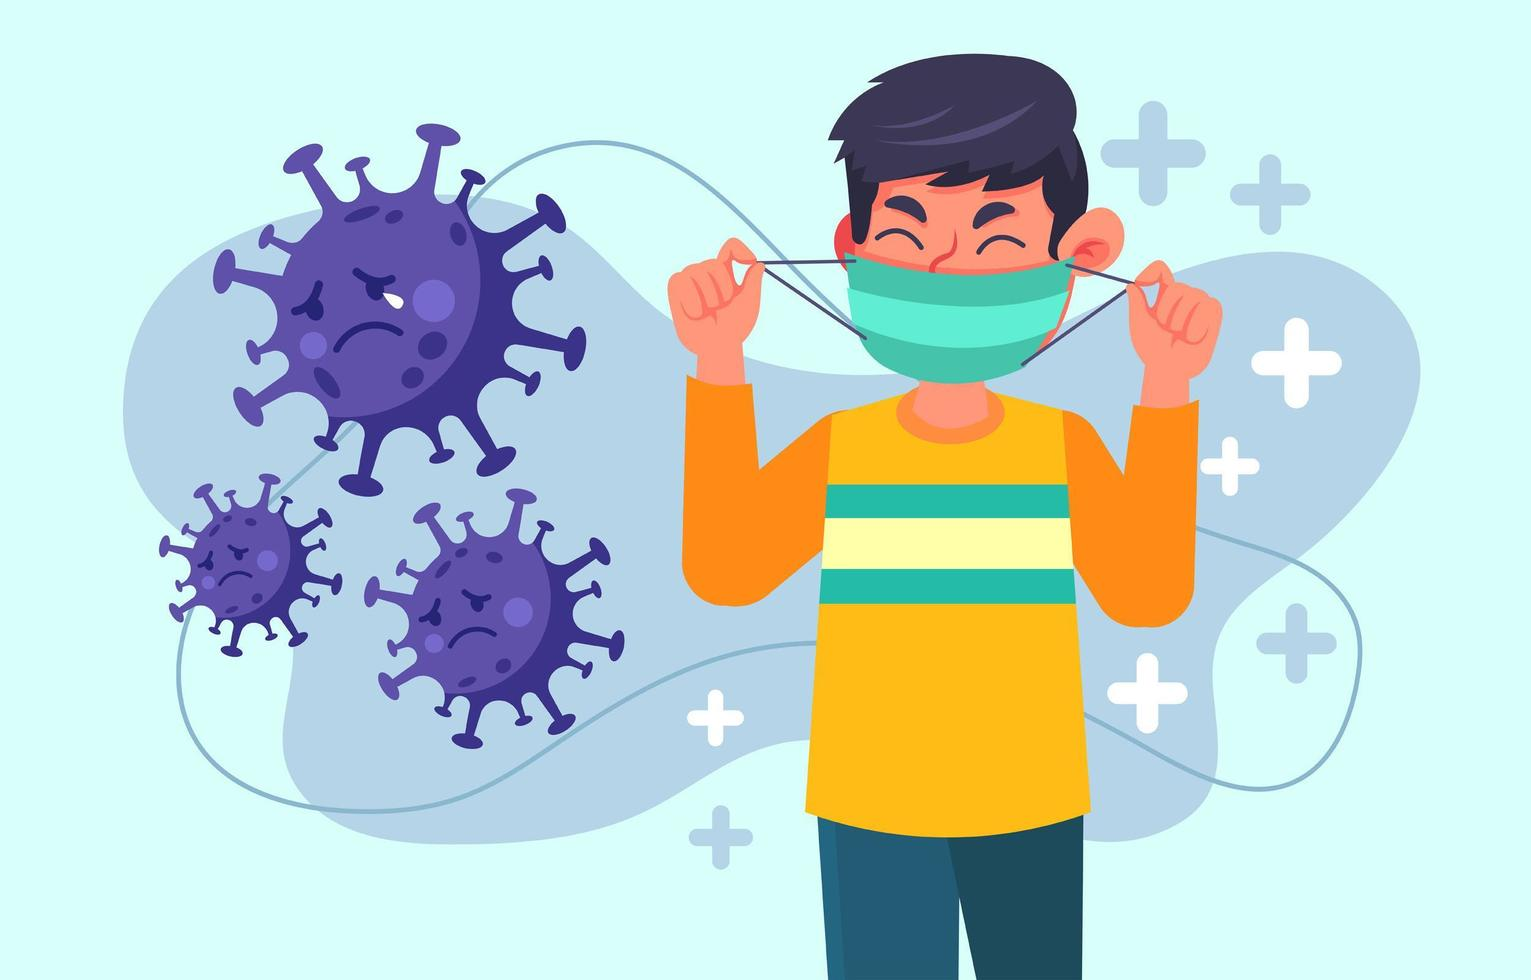 Avoid Virus by Using Mask to Protect Us vector